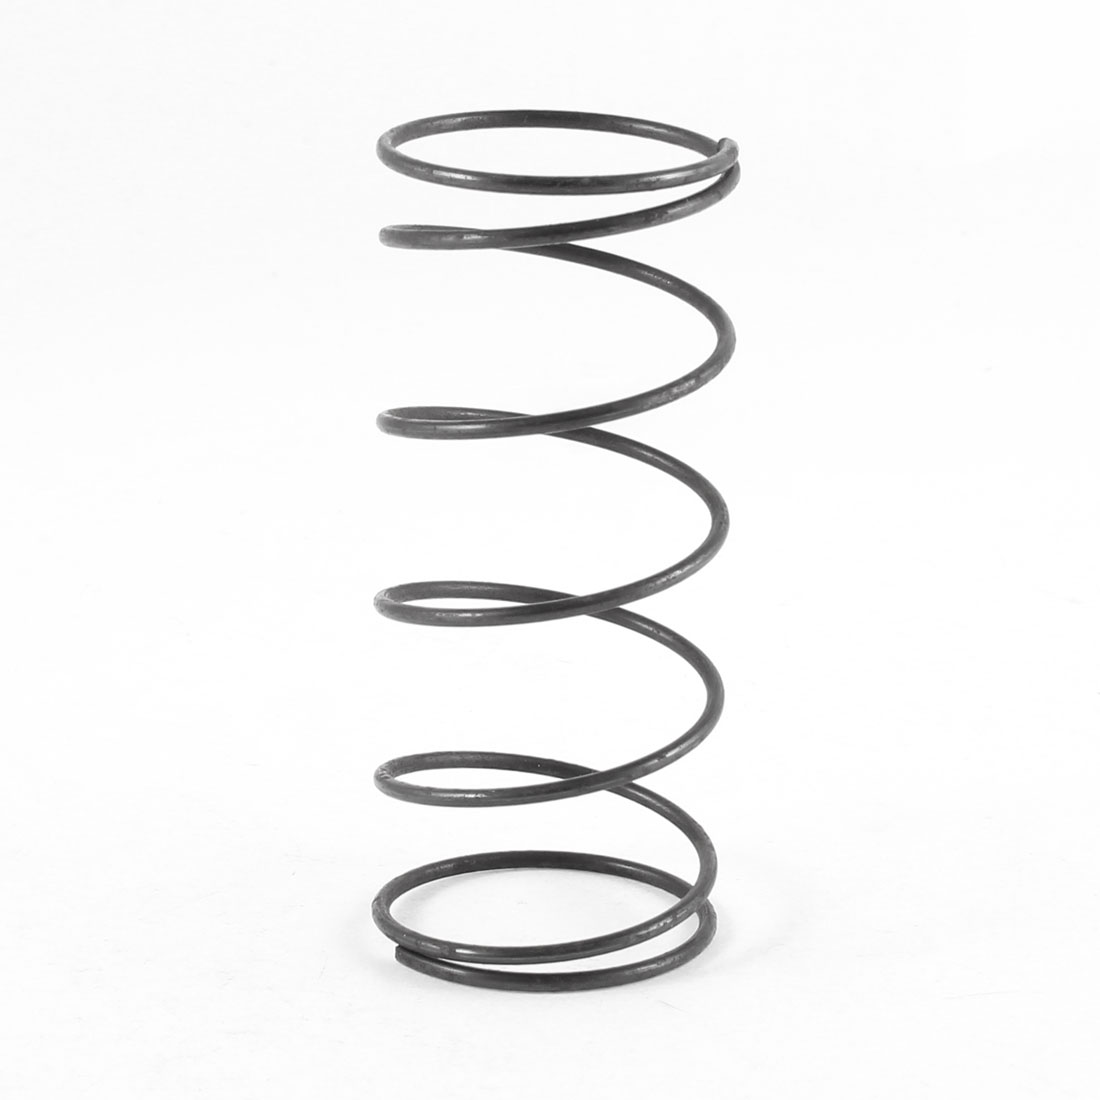 Replacement Single Coil Spring 80mm x 35mm for Z1C-MH-26 Electric Hammer